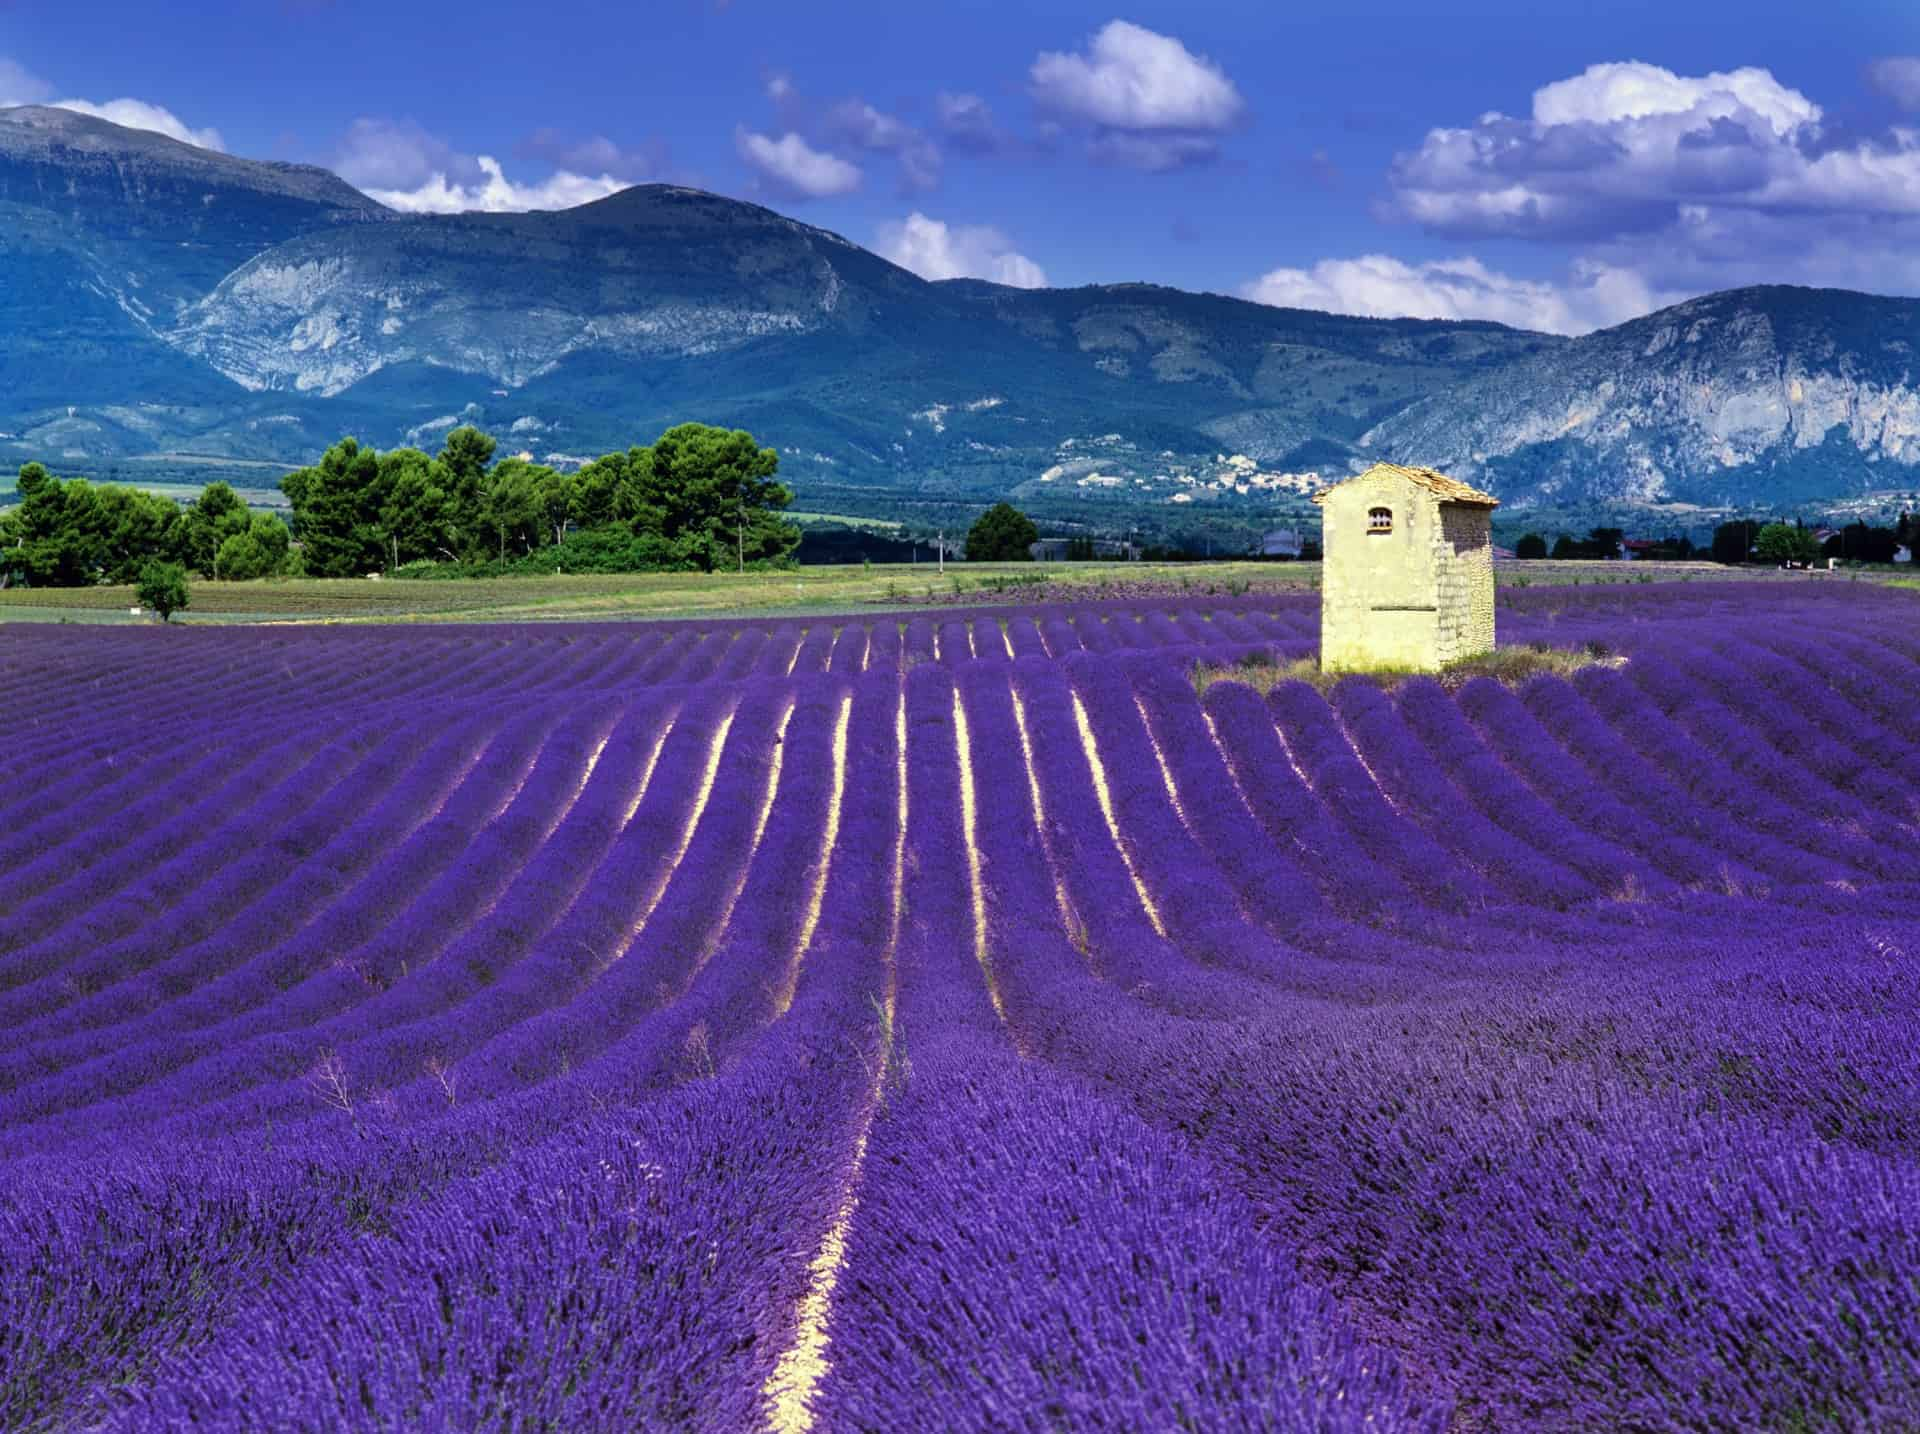 A field of lavender blooming in Provence, France